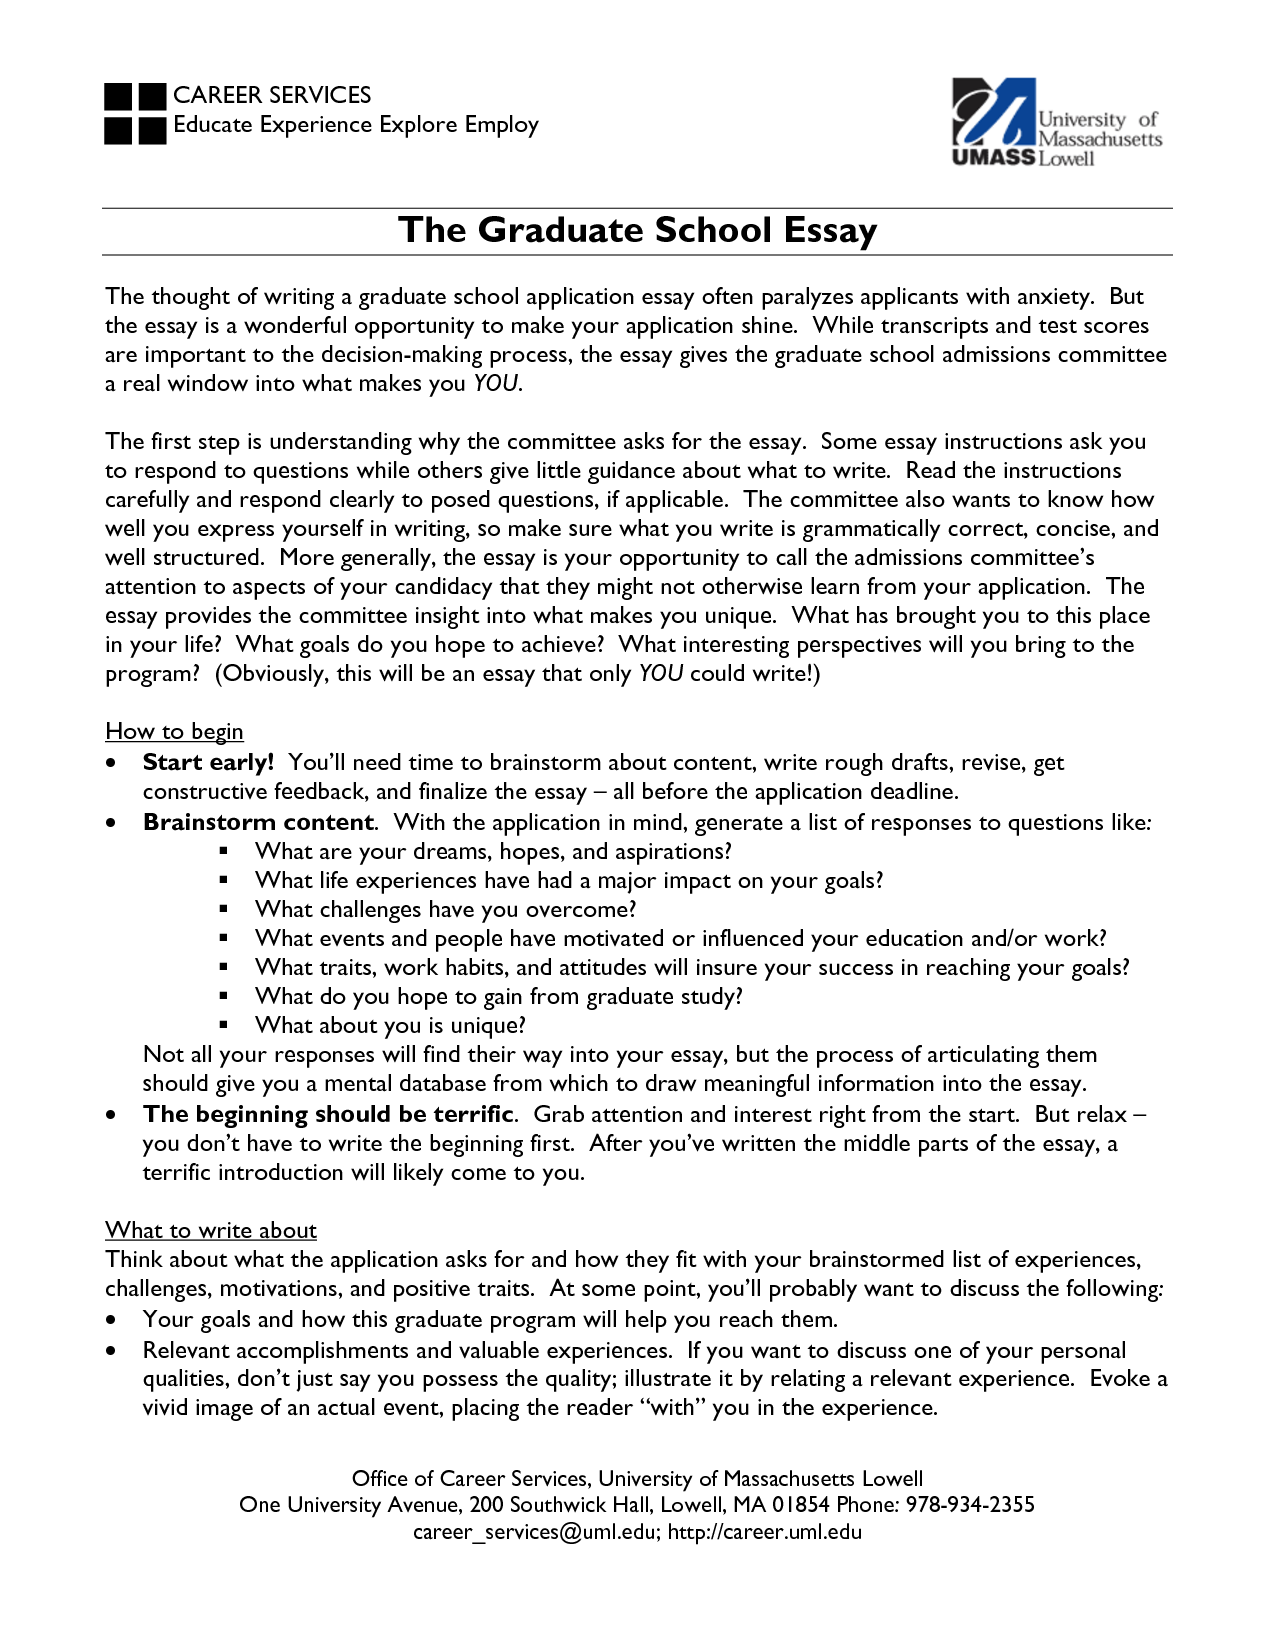 015 Essay Example 36nyax20x5 Excellent Graduation College Ideas Full